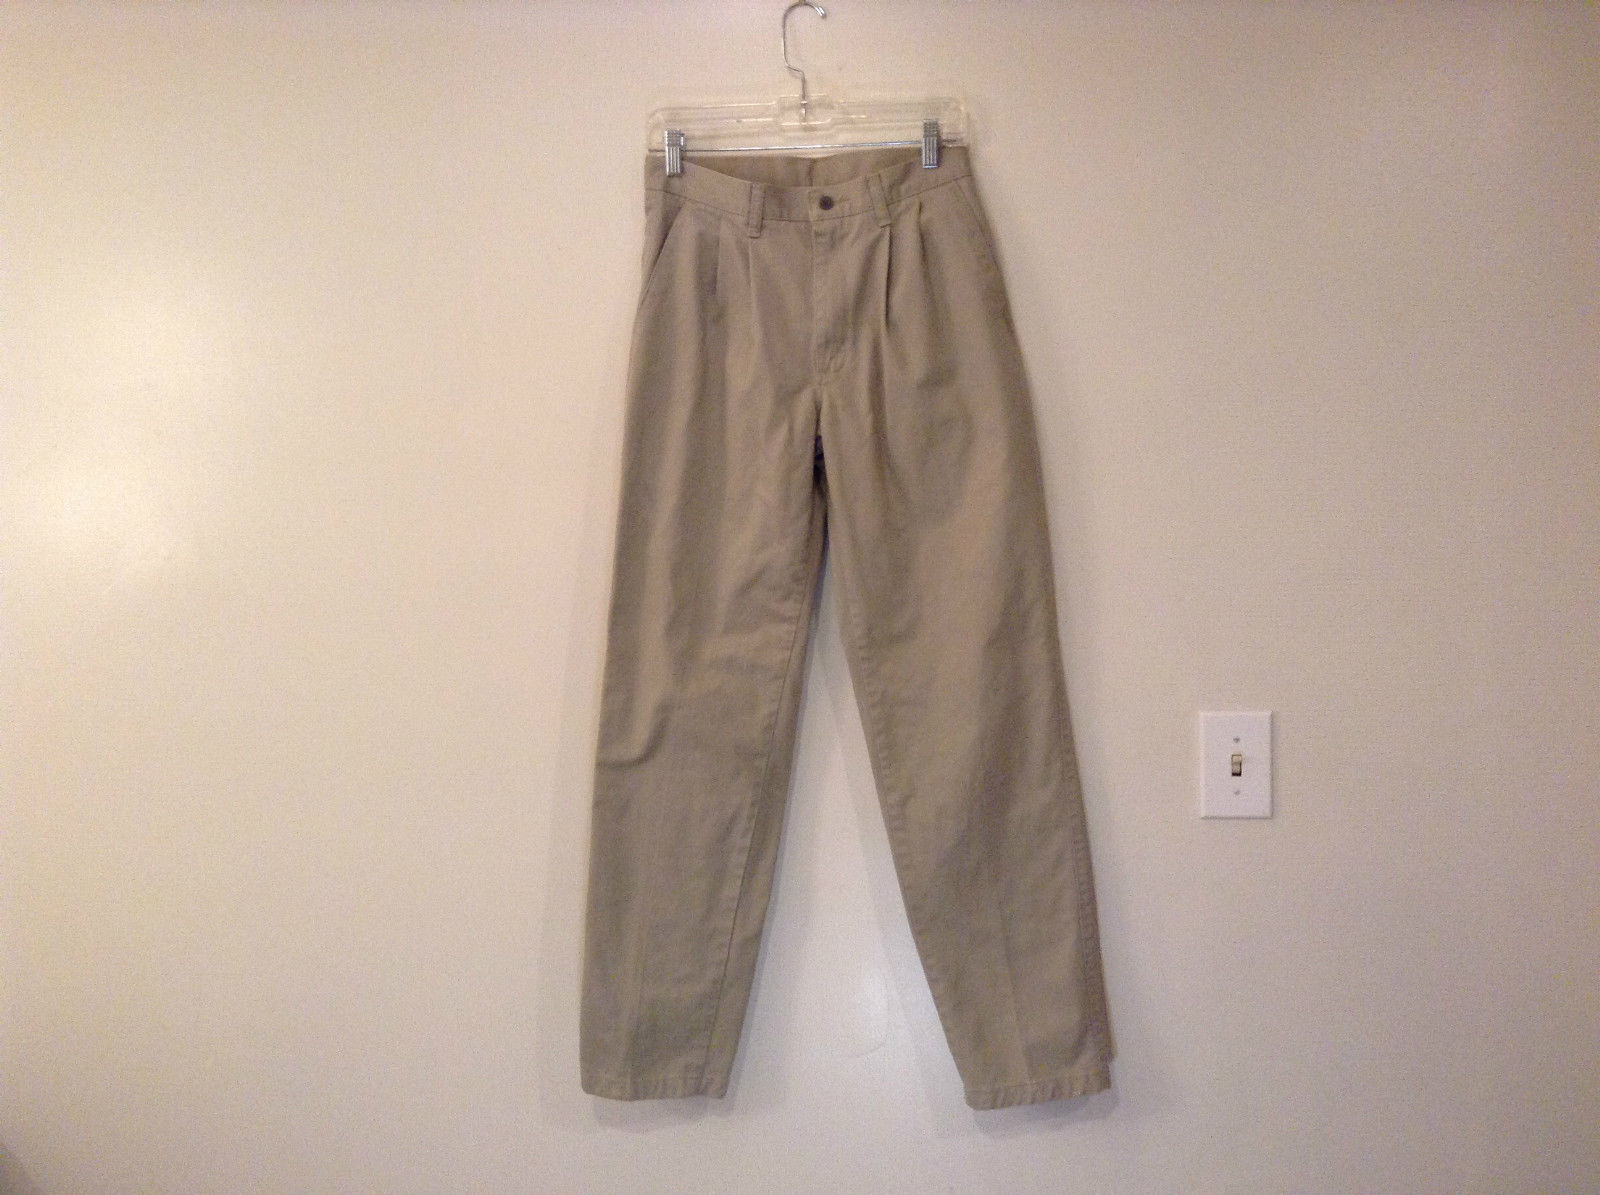 Lee Performance Khakis Pleated Front Khakis Size 30 by 34 Very Good Condition